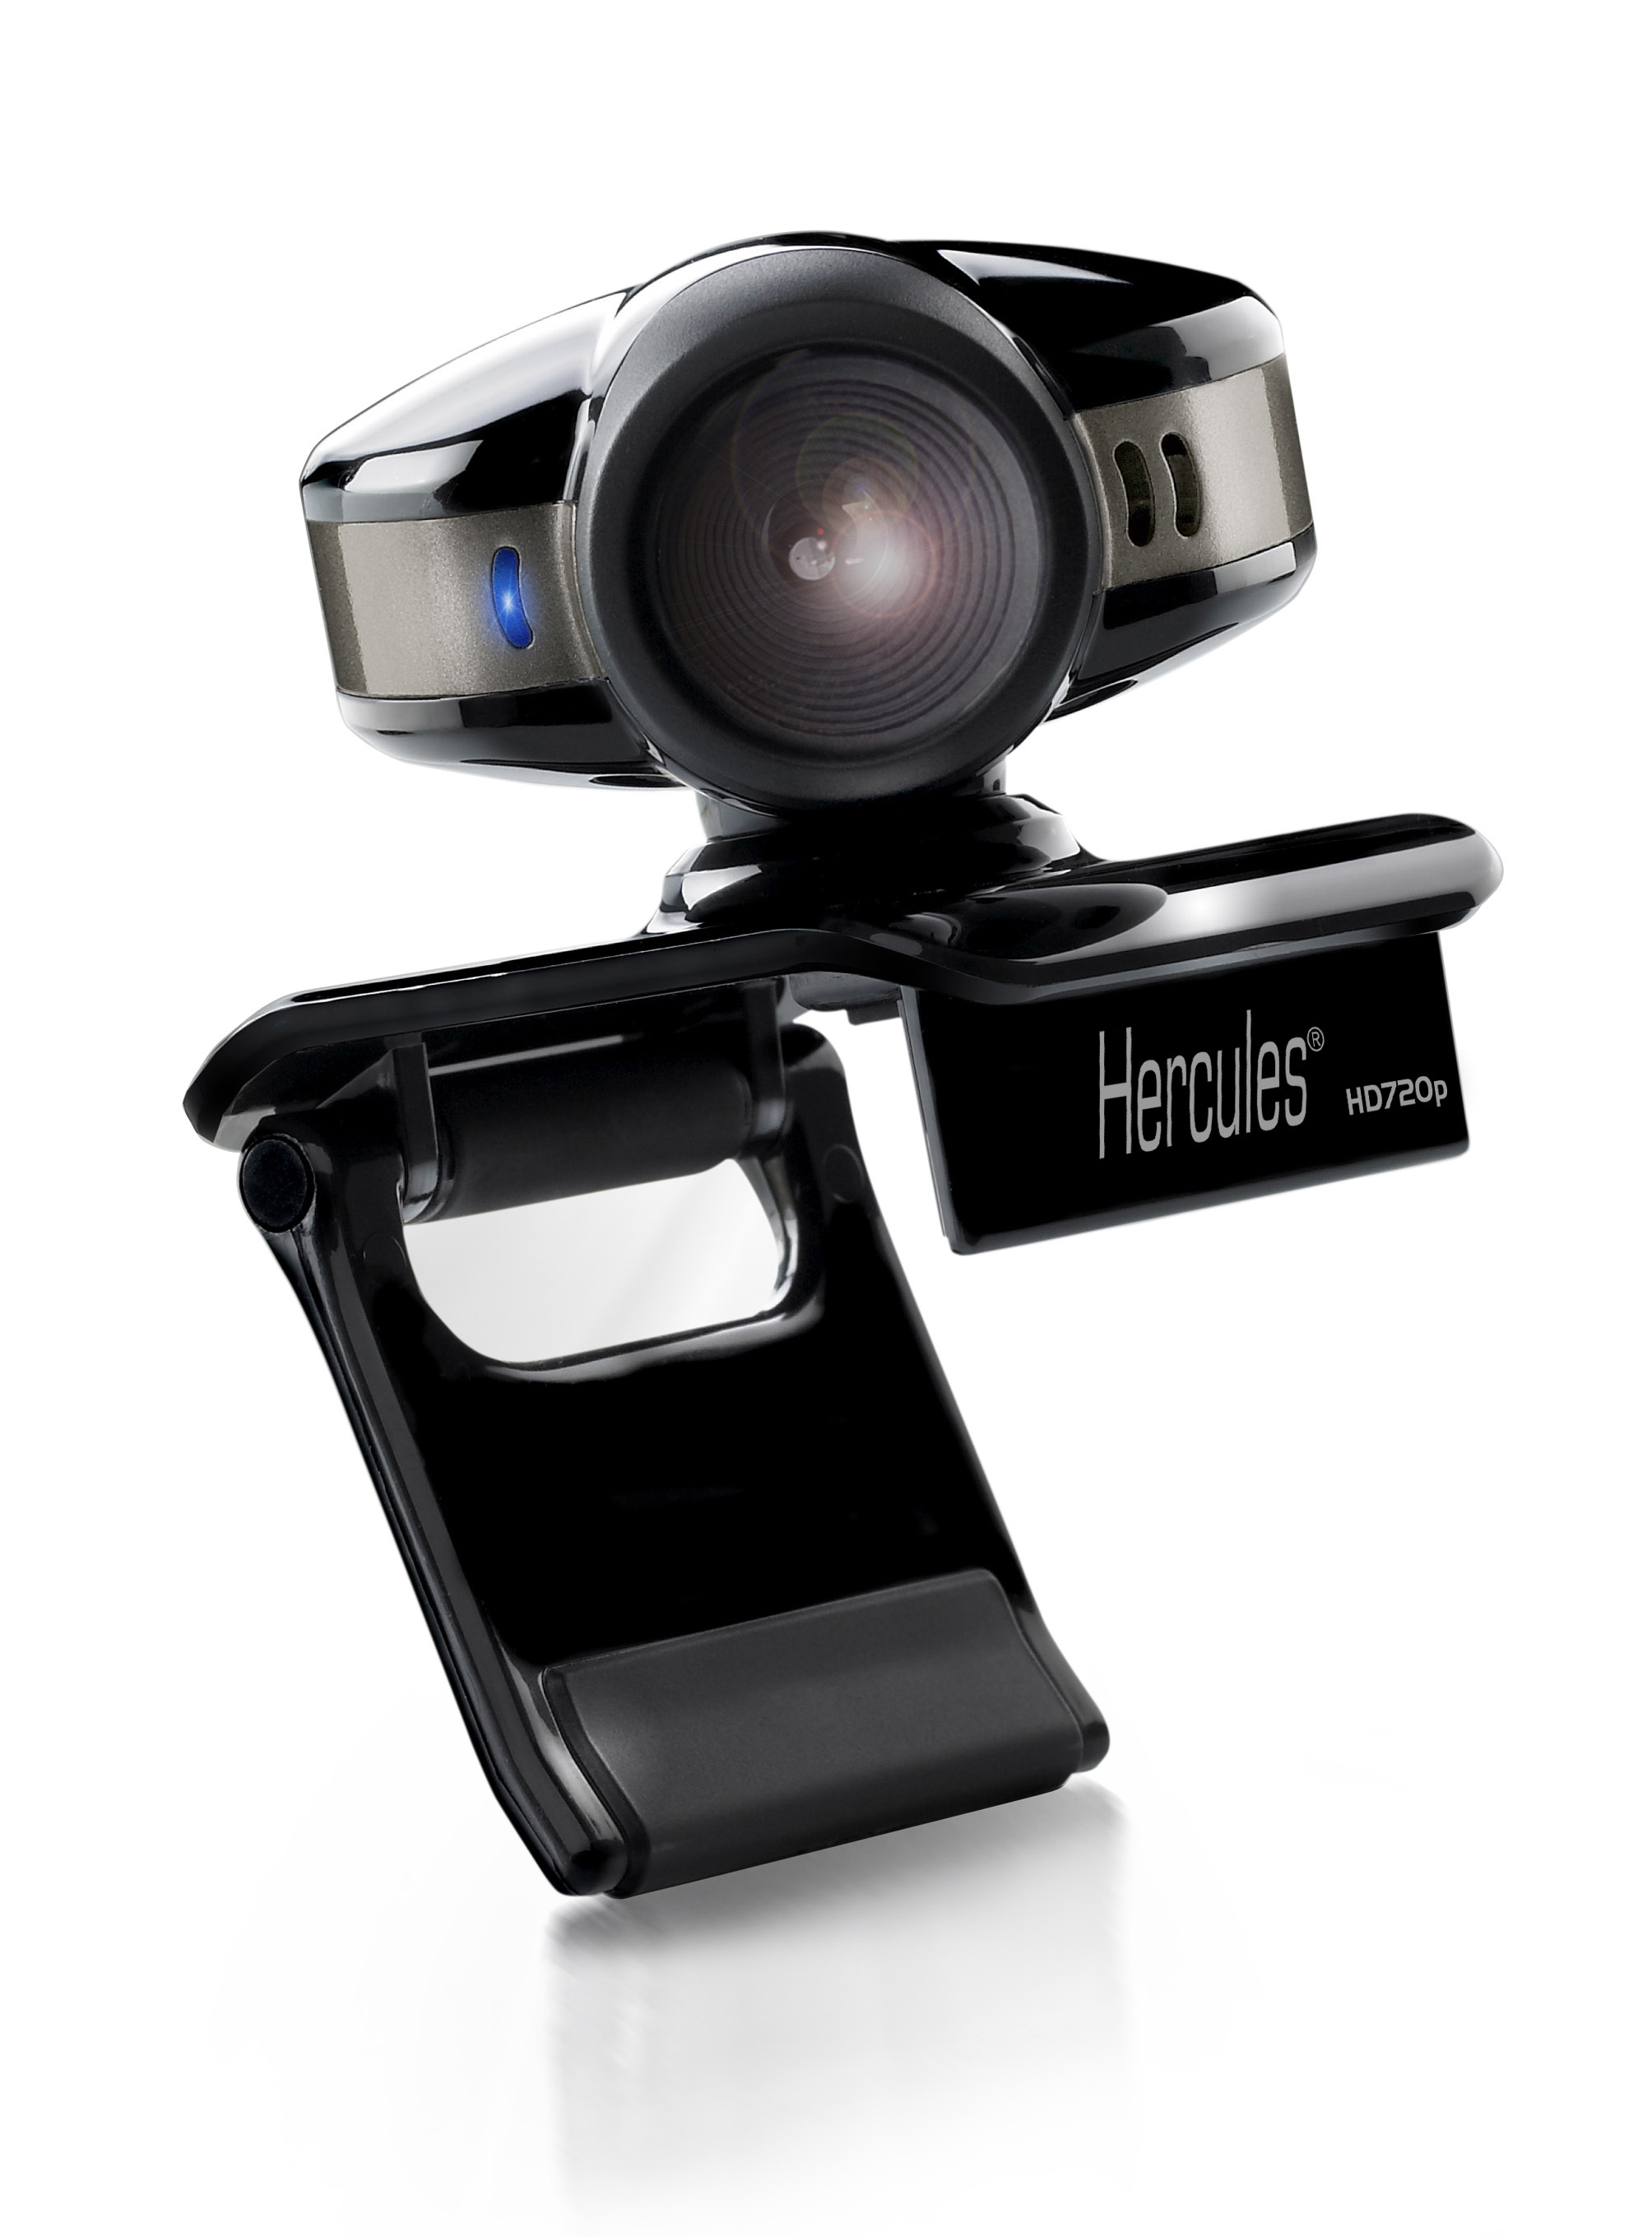 Hercules 4780655 Dualpix HD720p Emotion 1.0 M Effective Pixels USB 2.0 WebCam